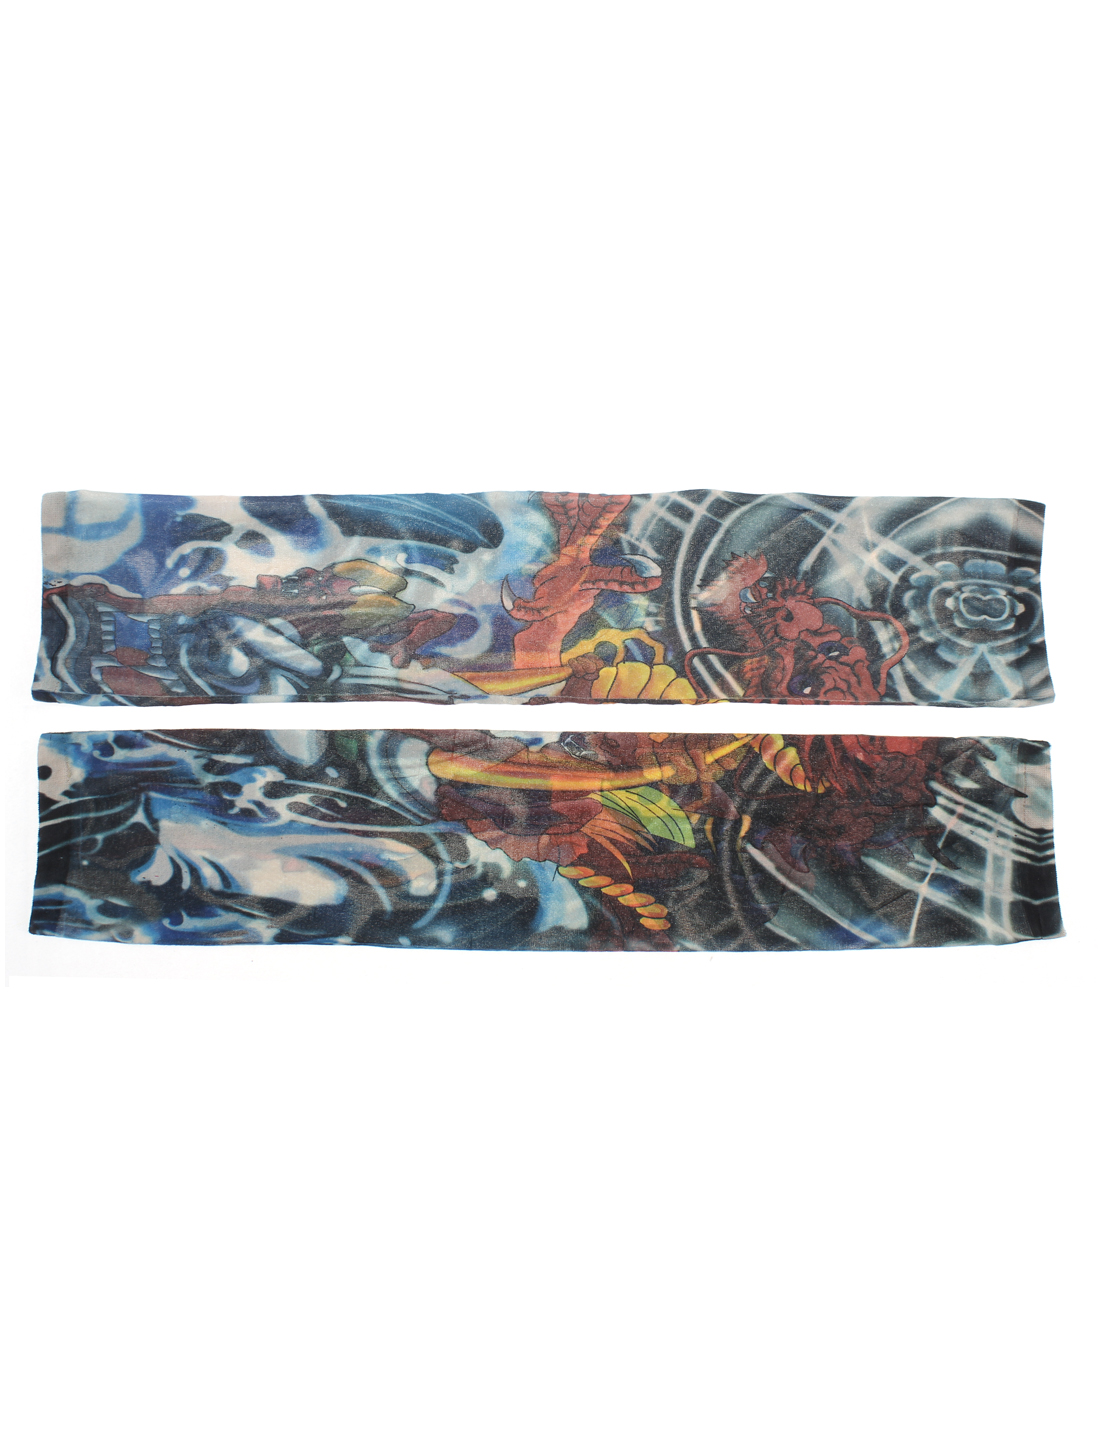 Dragon Pattern Stretchy Fingerless Temporary Tattoo Arm Sleeve Stocking 2pcs